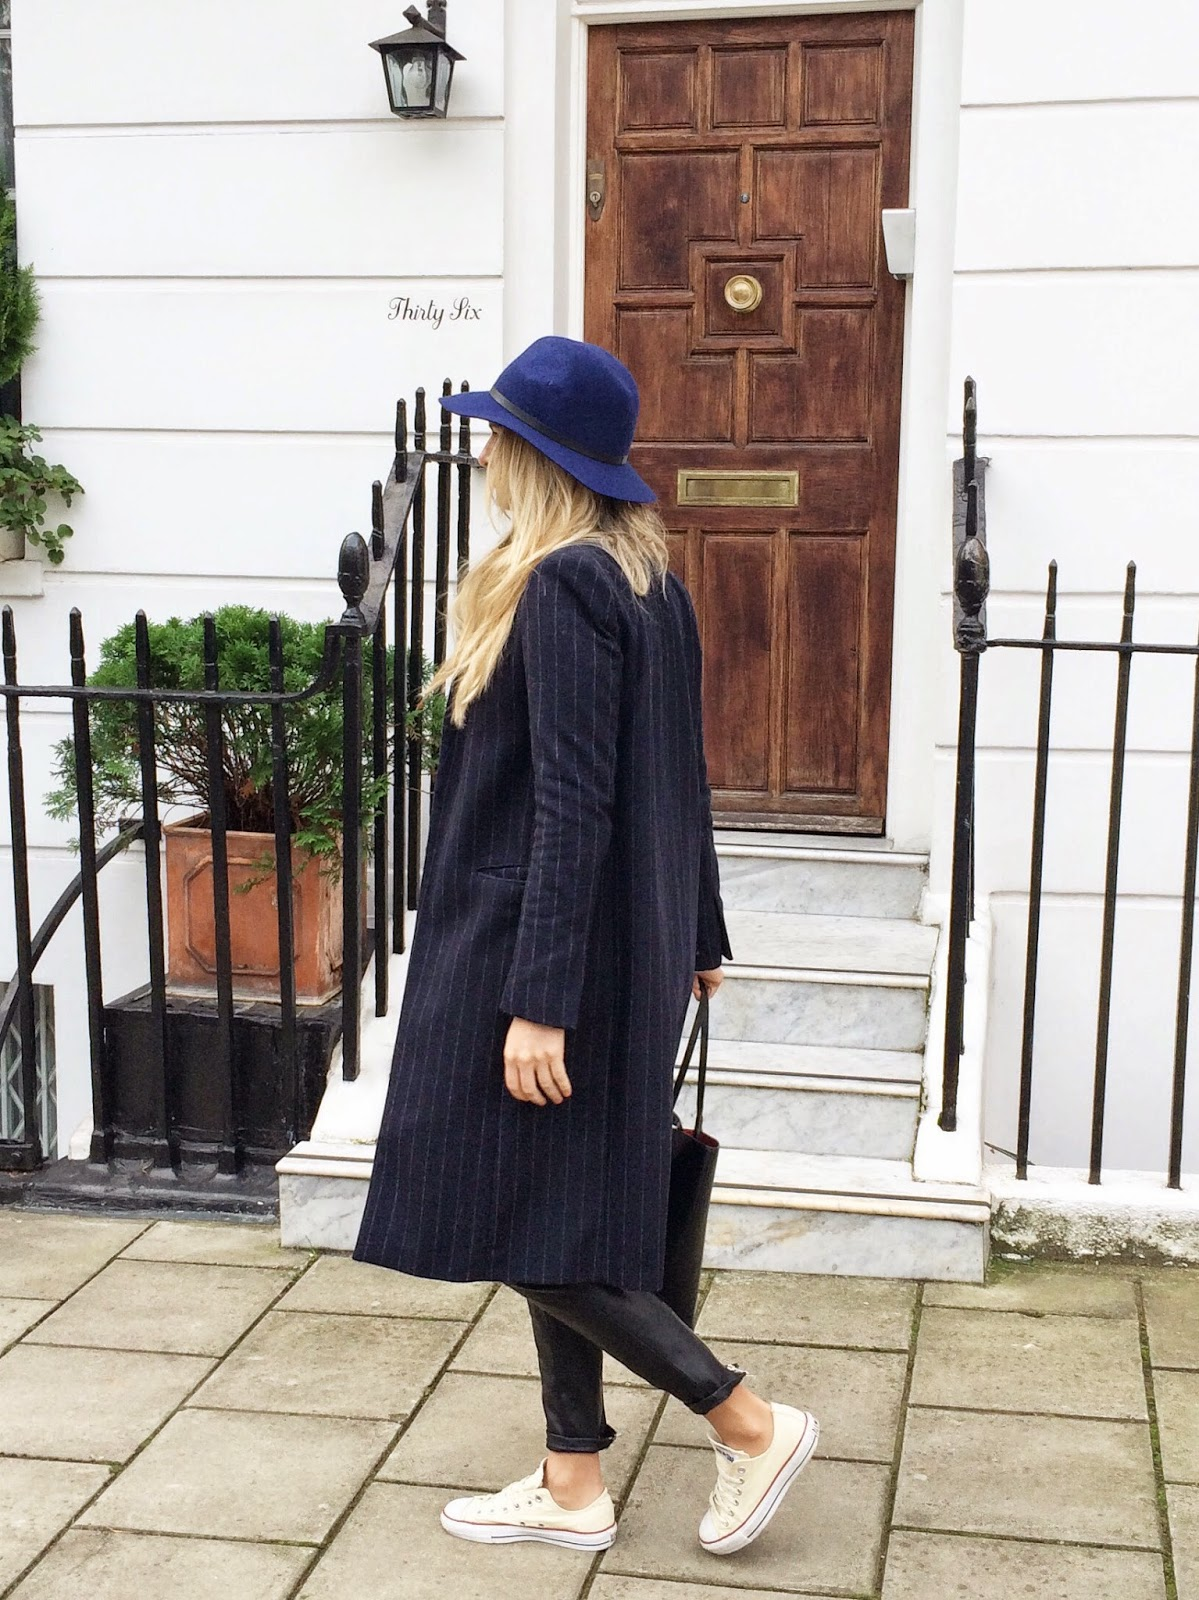 pin striped coat, blue coat, zara pinstriped coat, long blue coat, leather pants, converse, blue hat, topshop hat, london, london blogger, london street style